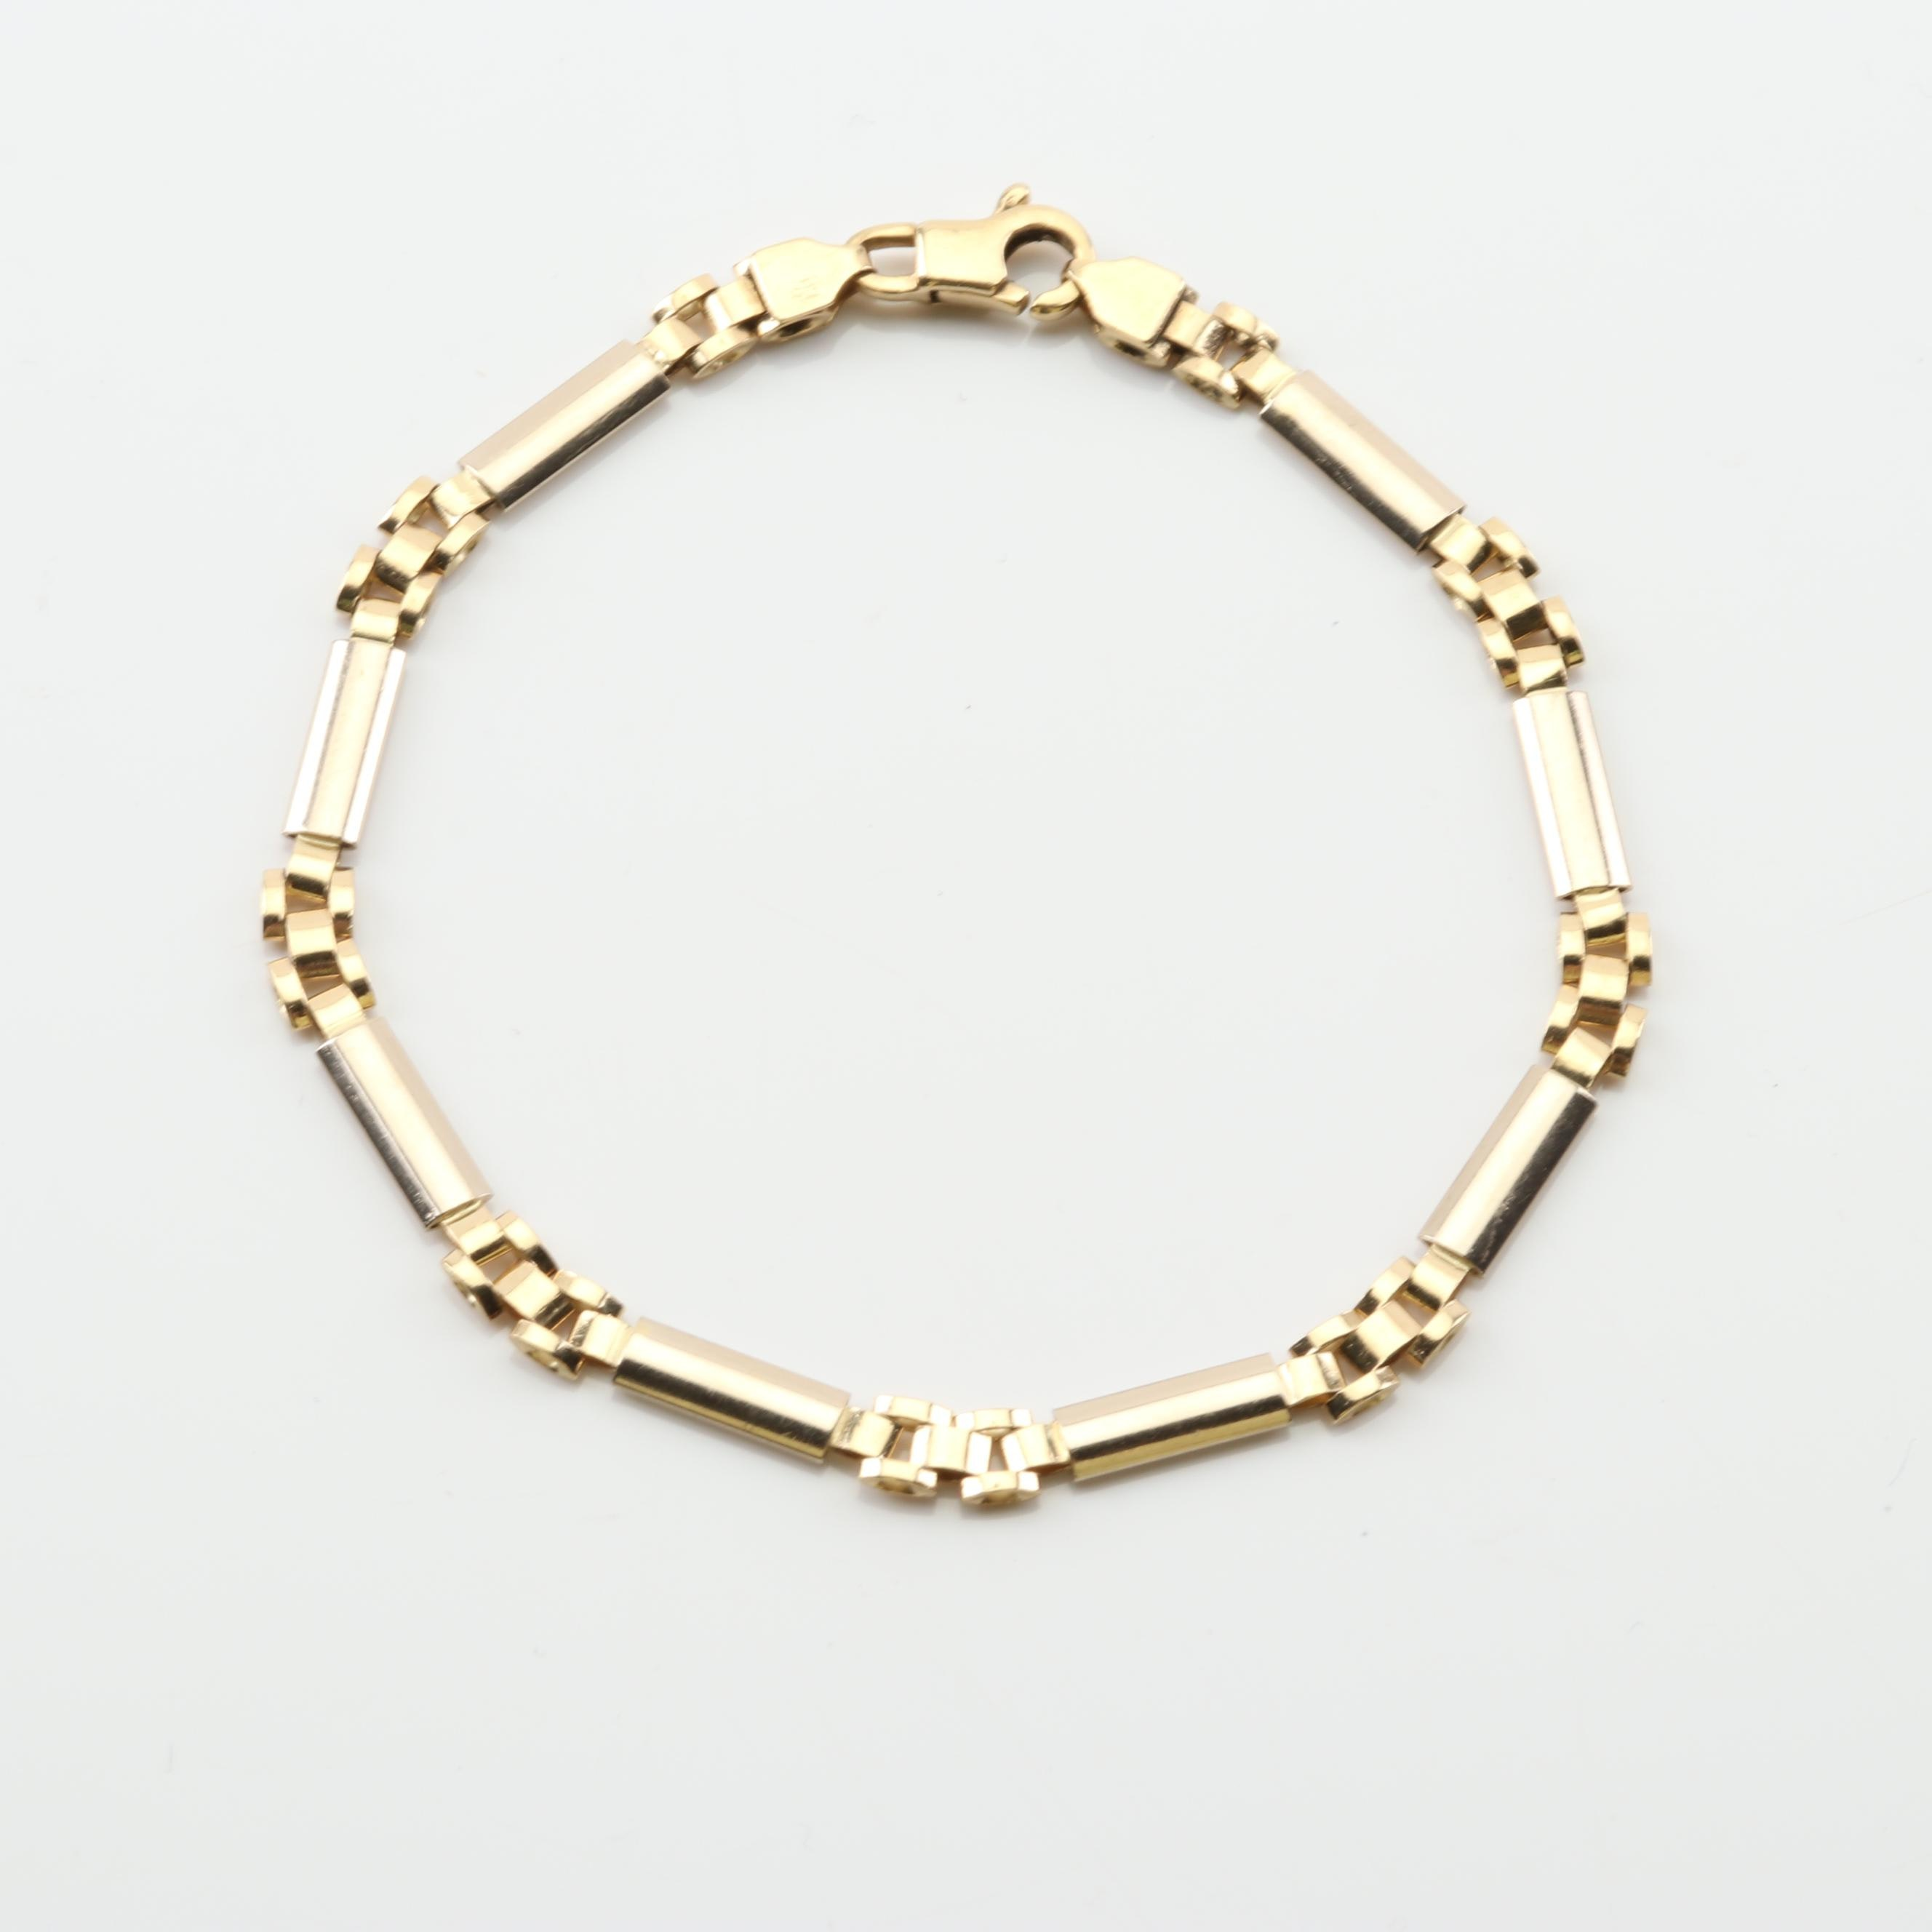 Aurafin 14K Yellow Gold Bar and Panther Chain Bracelet